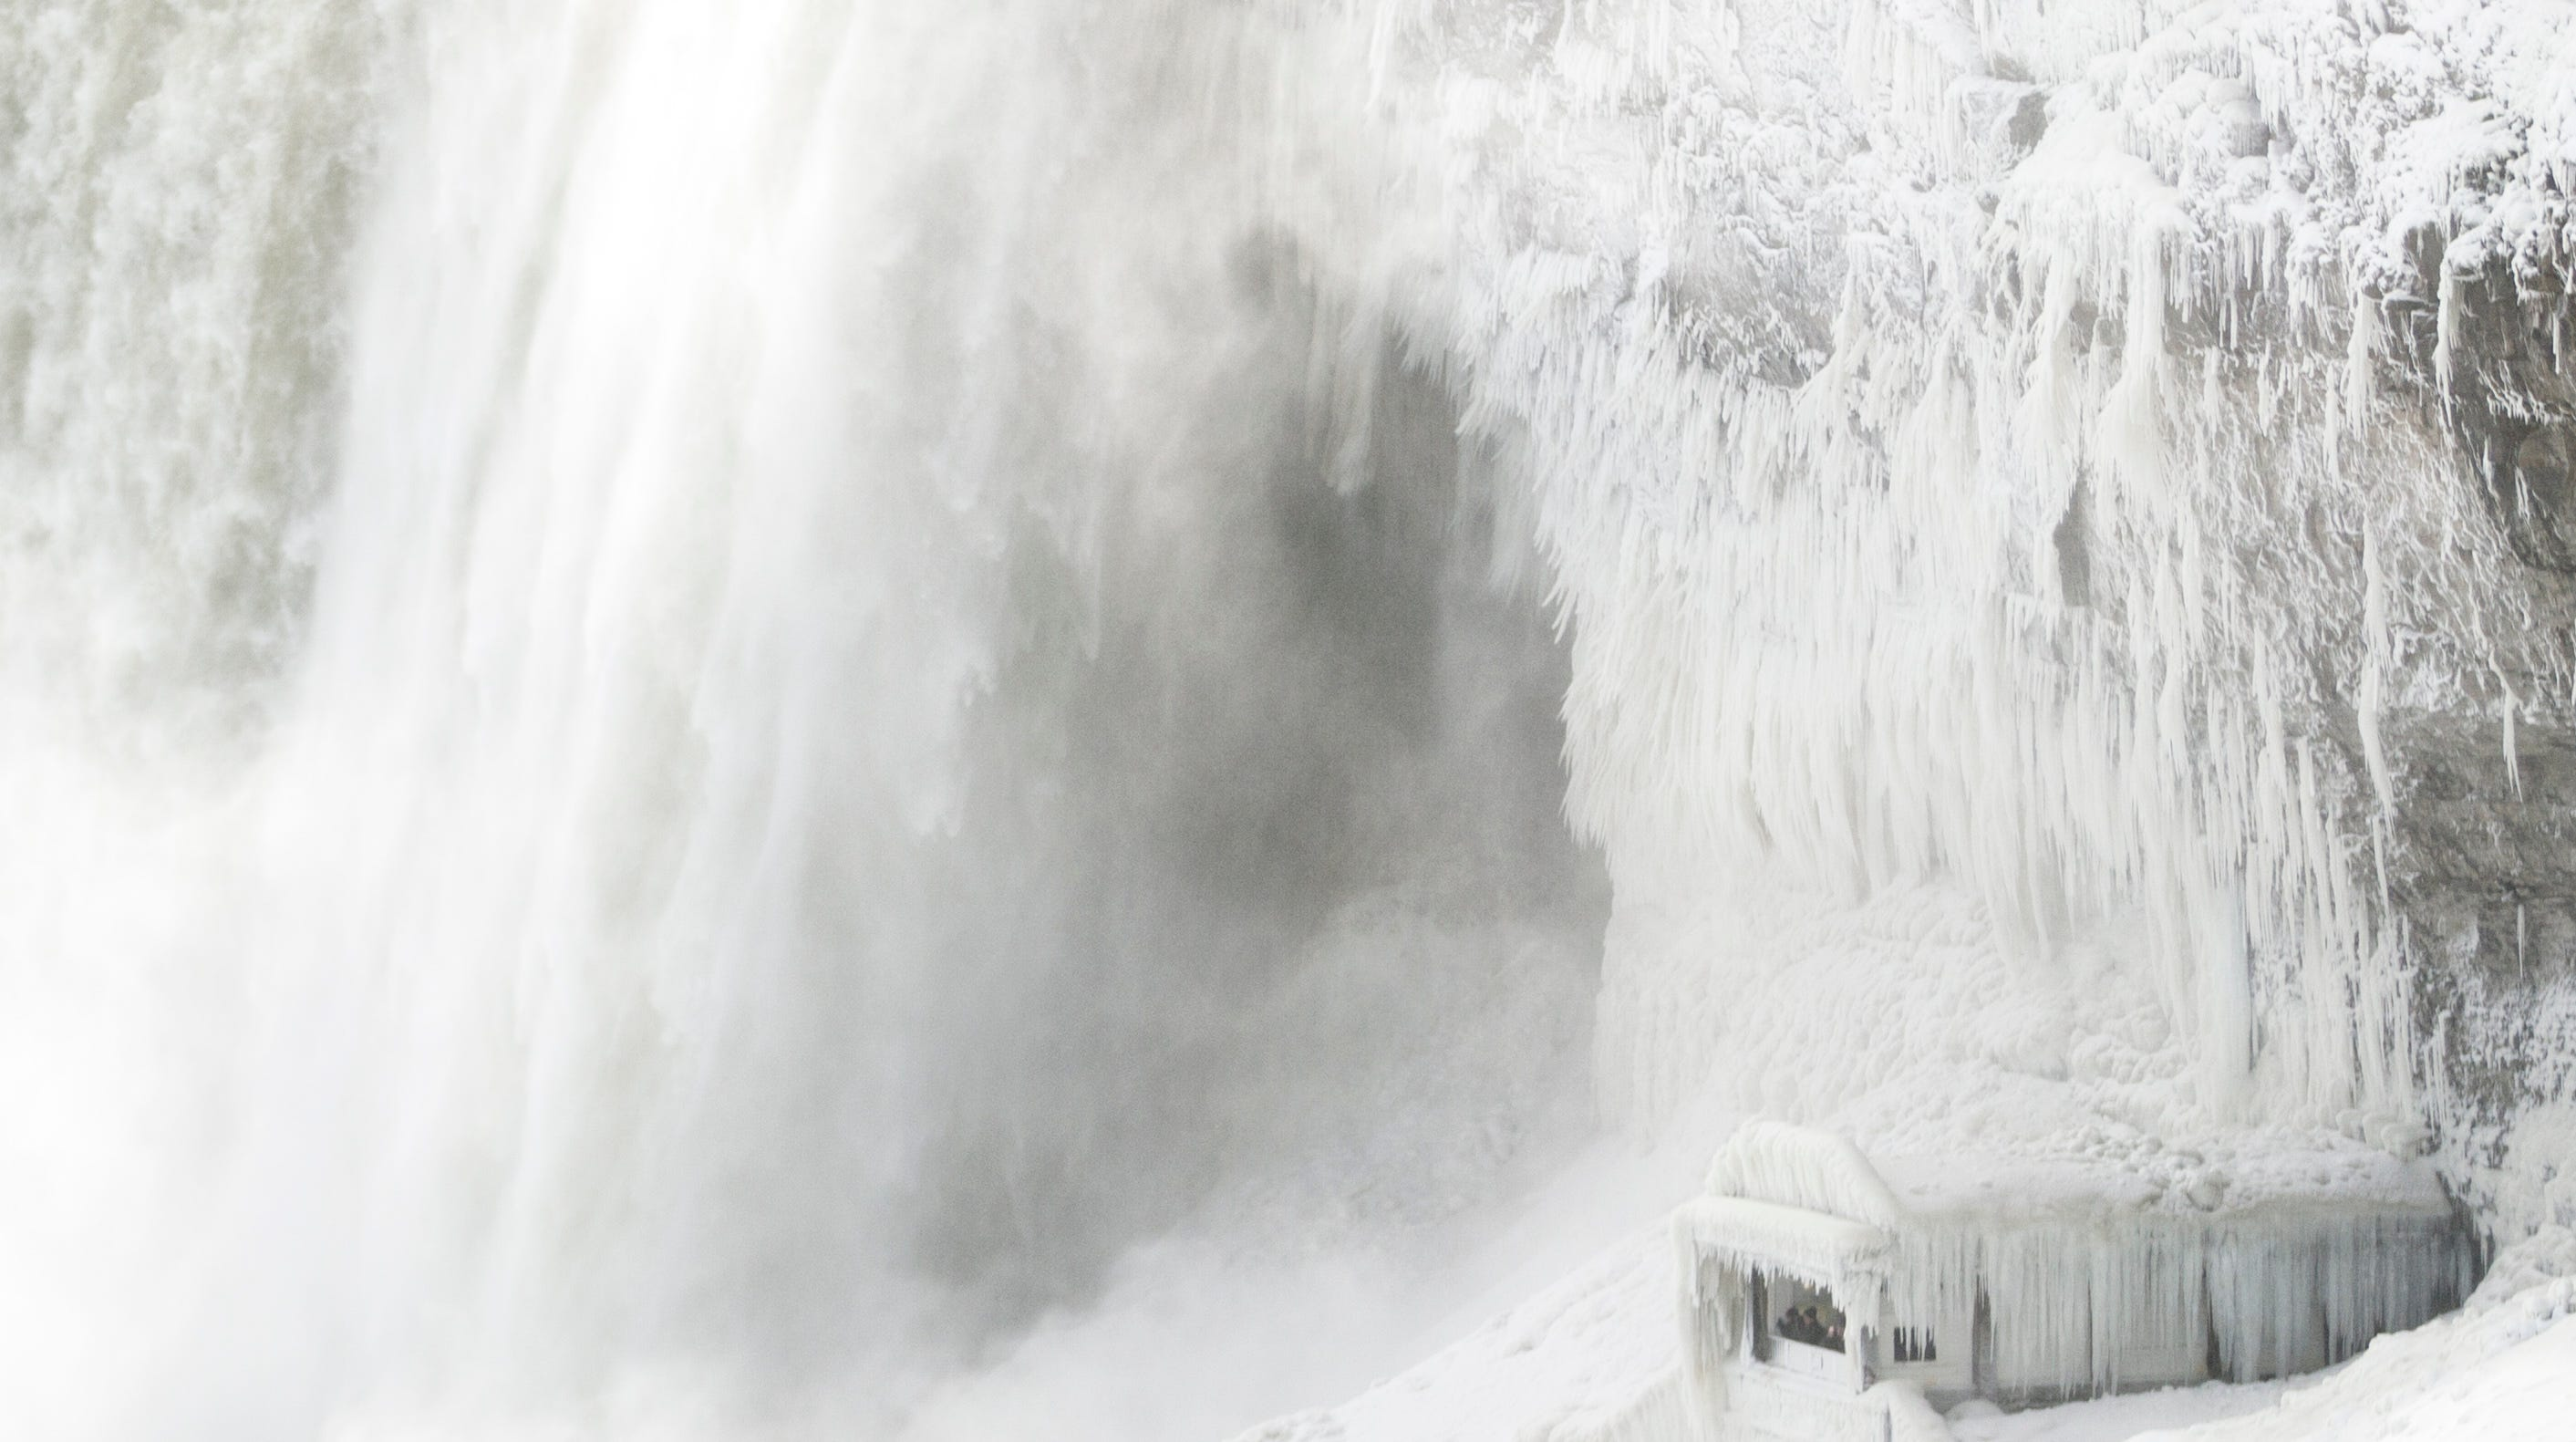 Ice coats the rocks and observation deck at the base of the Horseshoe falls in Niagara Falls, Ontario on January 3, 2018. The cold snap which has gripped much of Canada and the United States has nearly frozen over the American side of the falls. / AFP PHOTO / Geoff RobinsGEOFF ROBINS/AFP/Getty Images ORIG FILE ID: AFP_VL1YQ